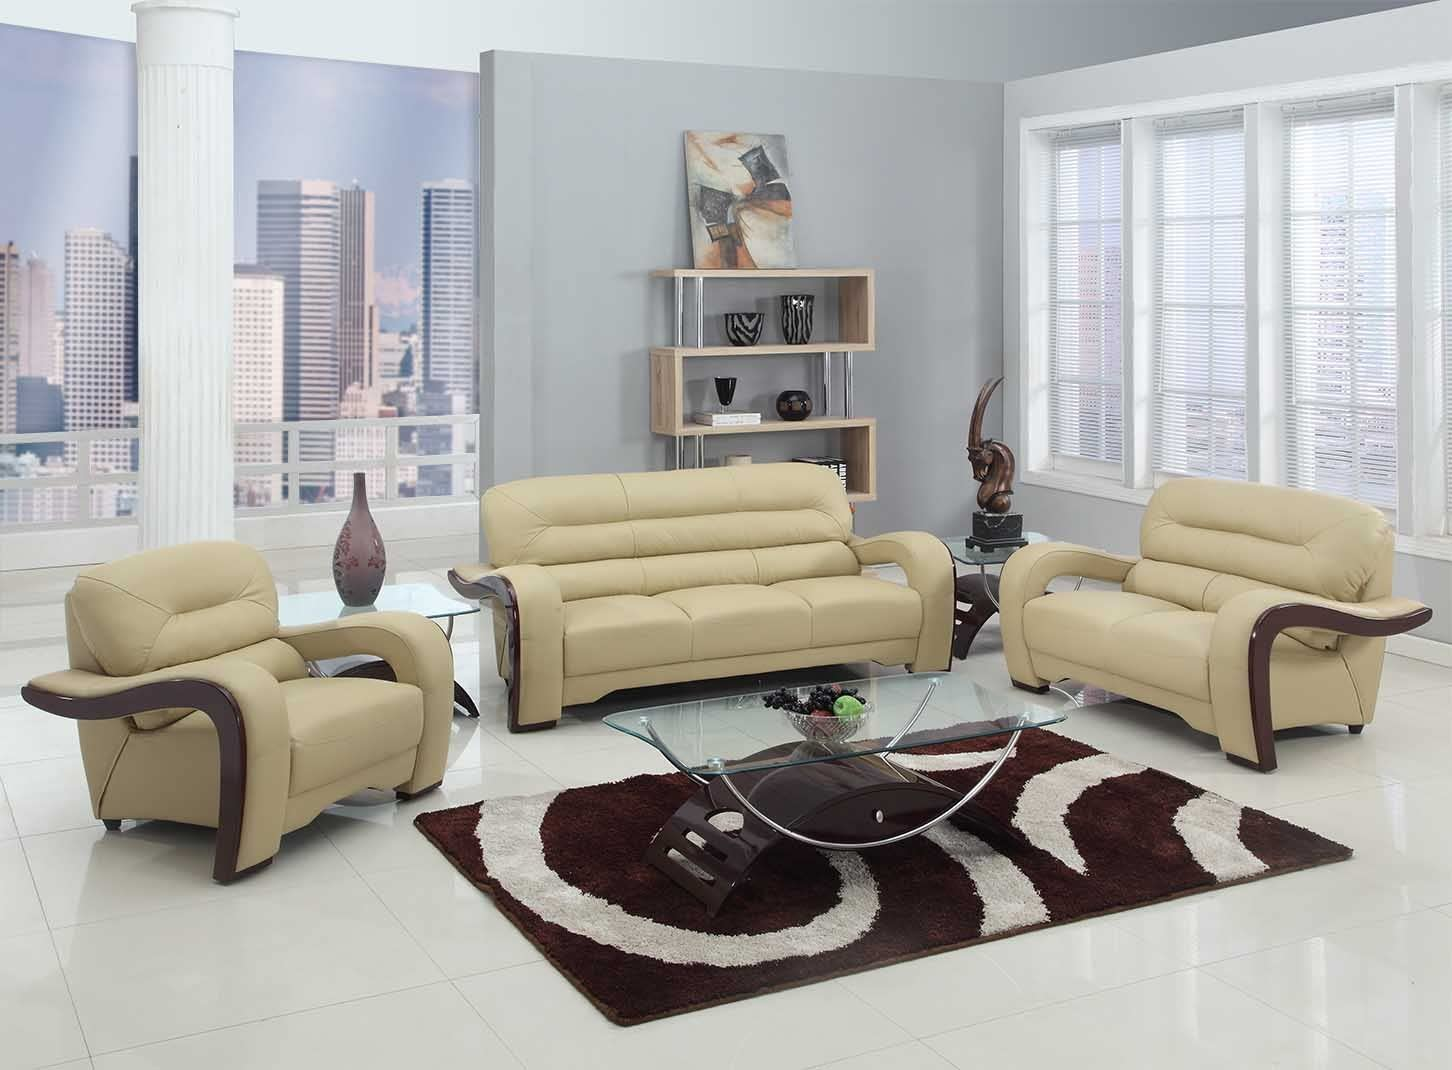 Blackjack Furniture 9412 Nathan Collection Leather Match/Gel Upholstered Contemporary Living Room